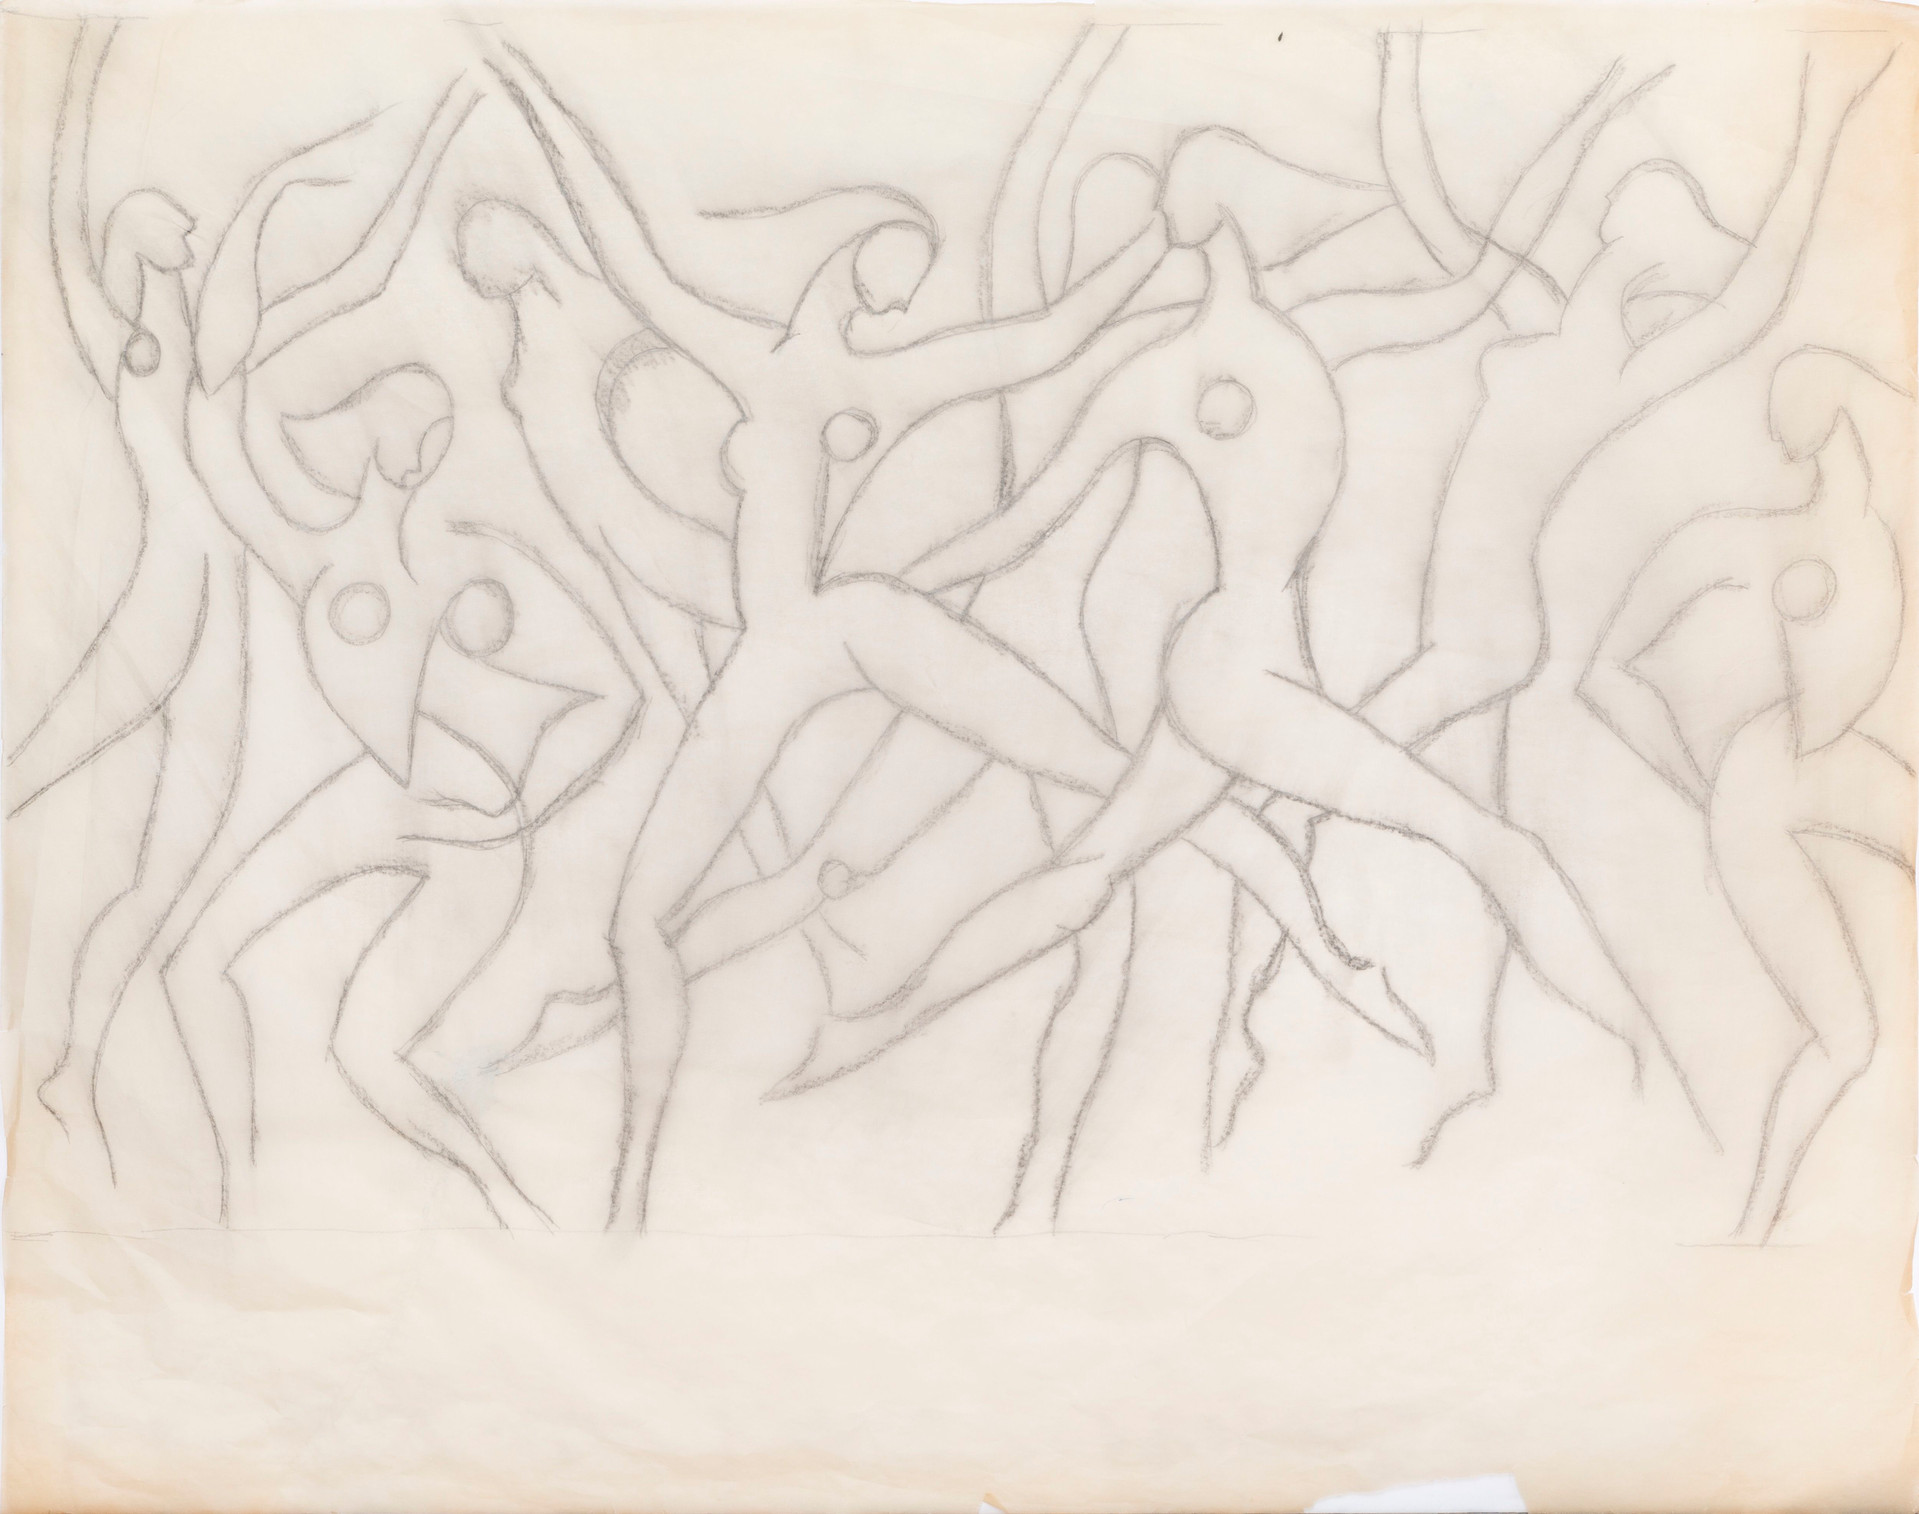 Drawing for Dance Movement (many abstract nudes)